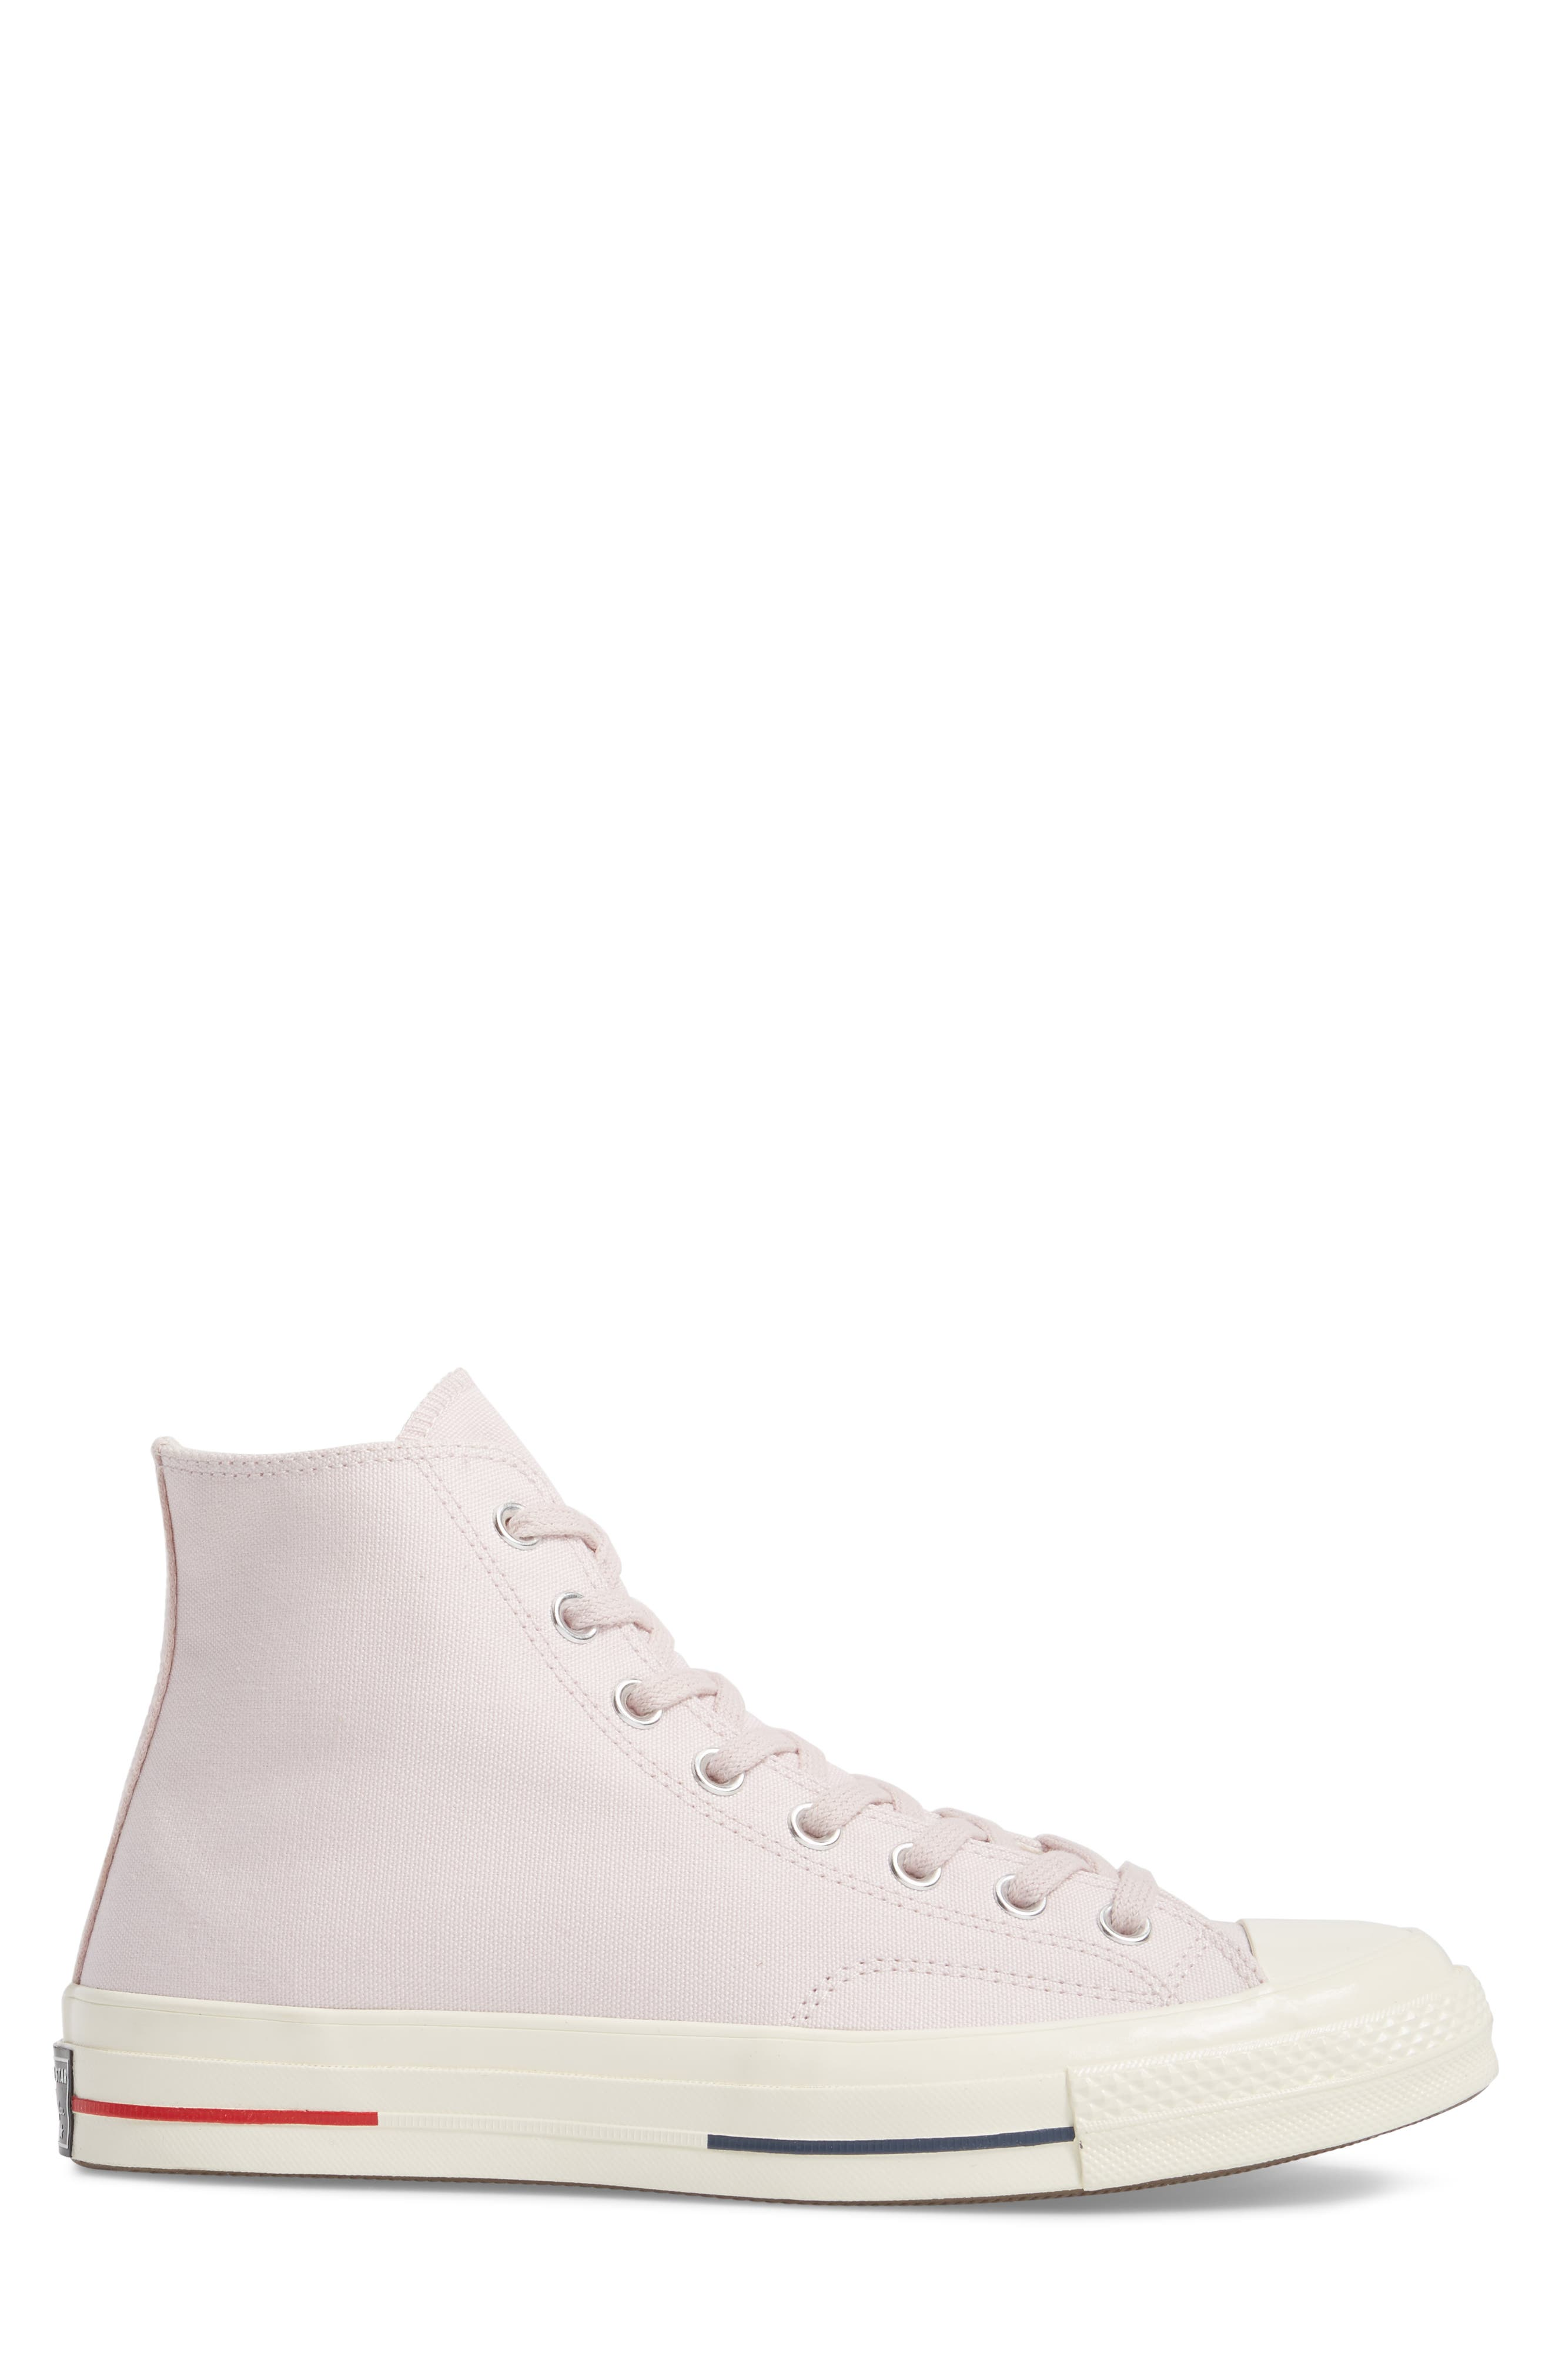 Chuck Taylor<sup>®</sup> All Star<sup>®</sup> '70 Heritage High Top Sneaker,                             Alternate thumbnail 3, color,                             Barely Rose